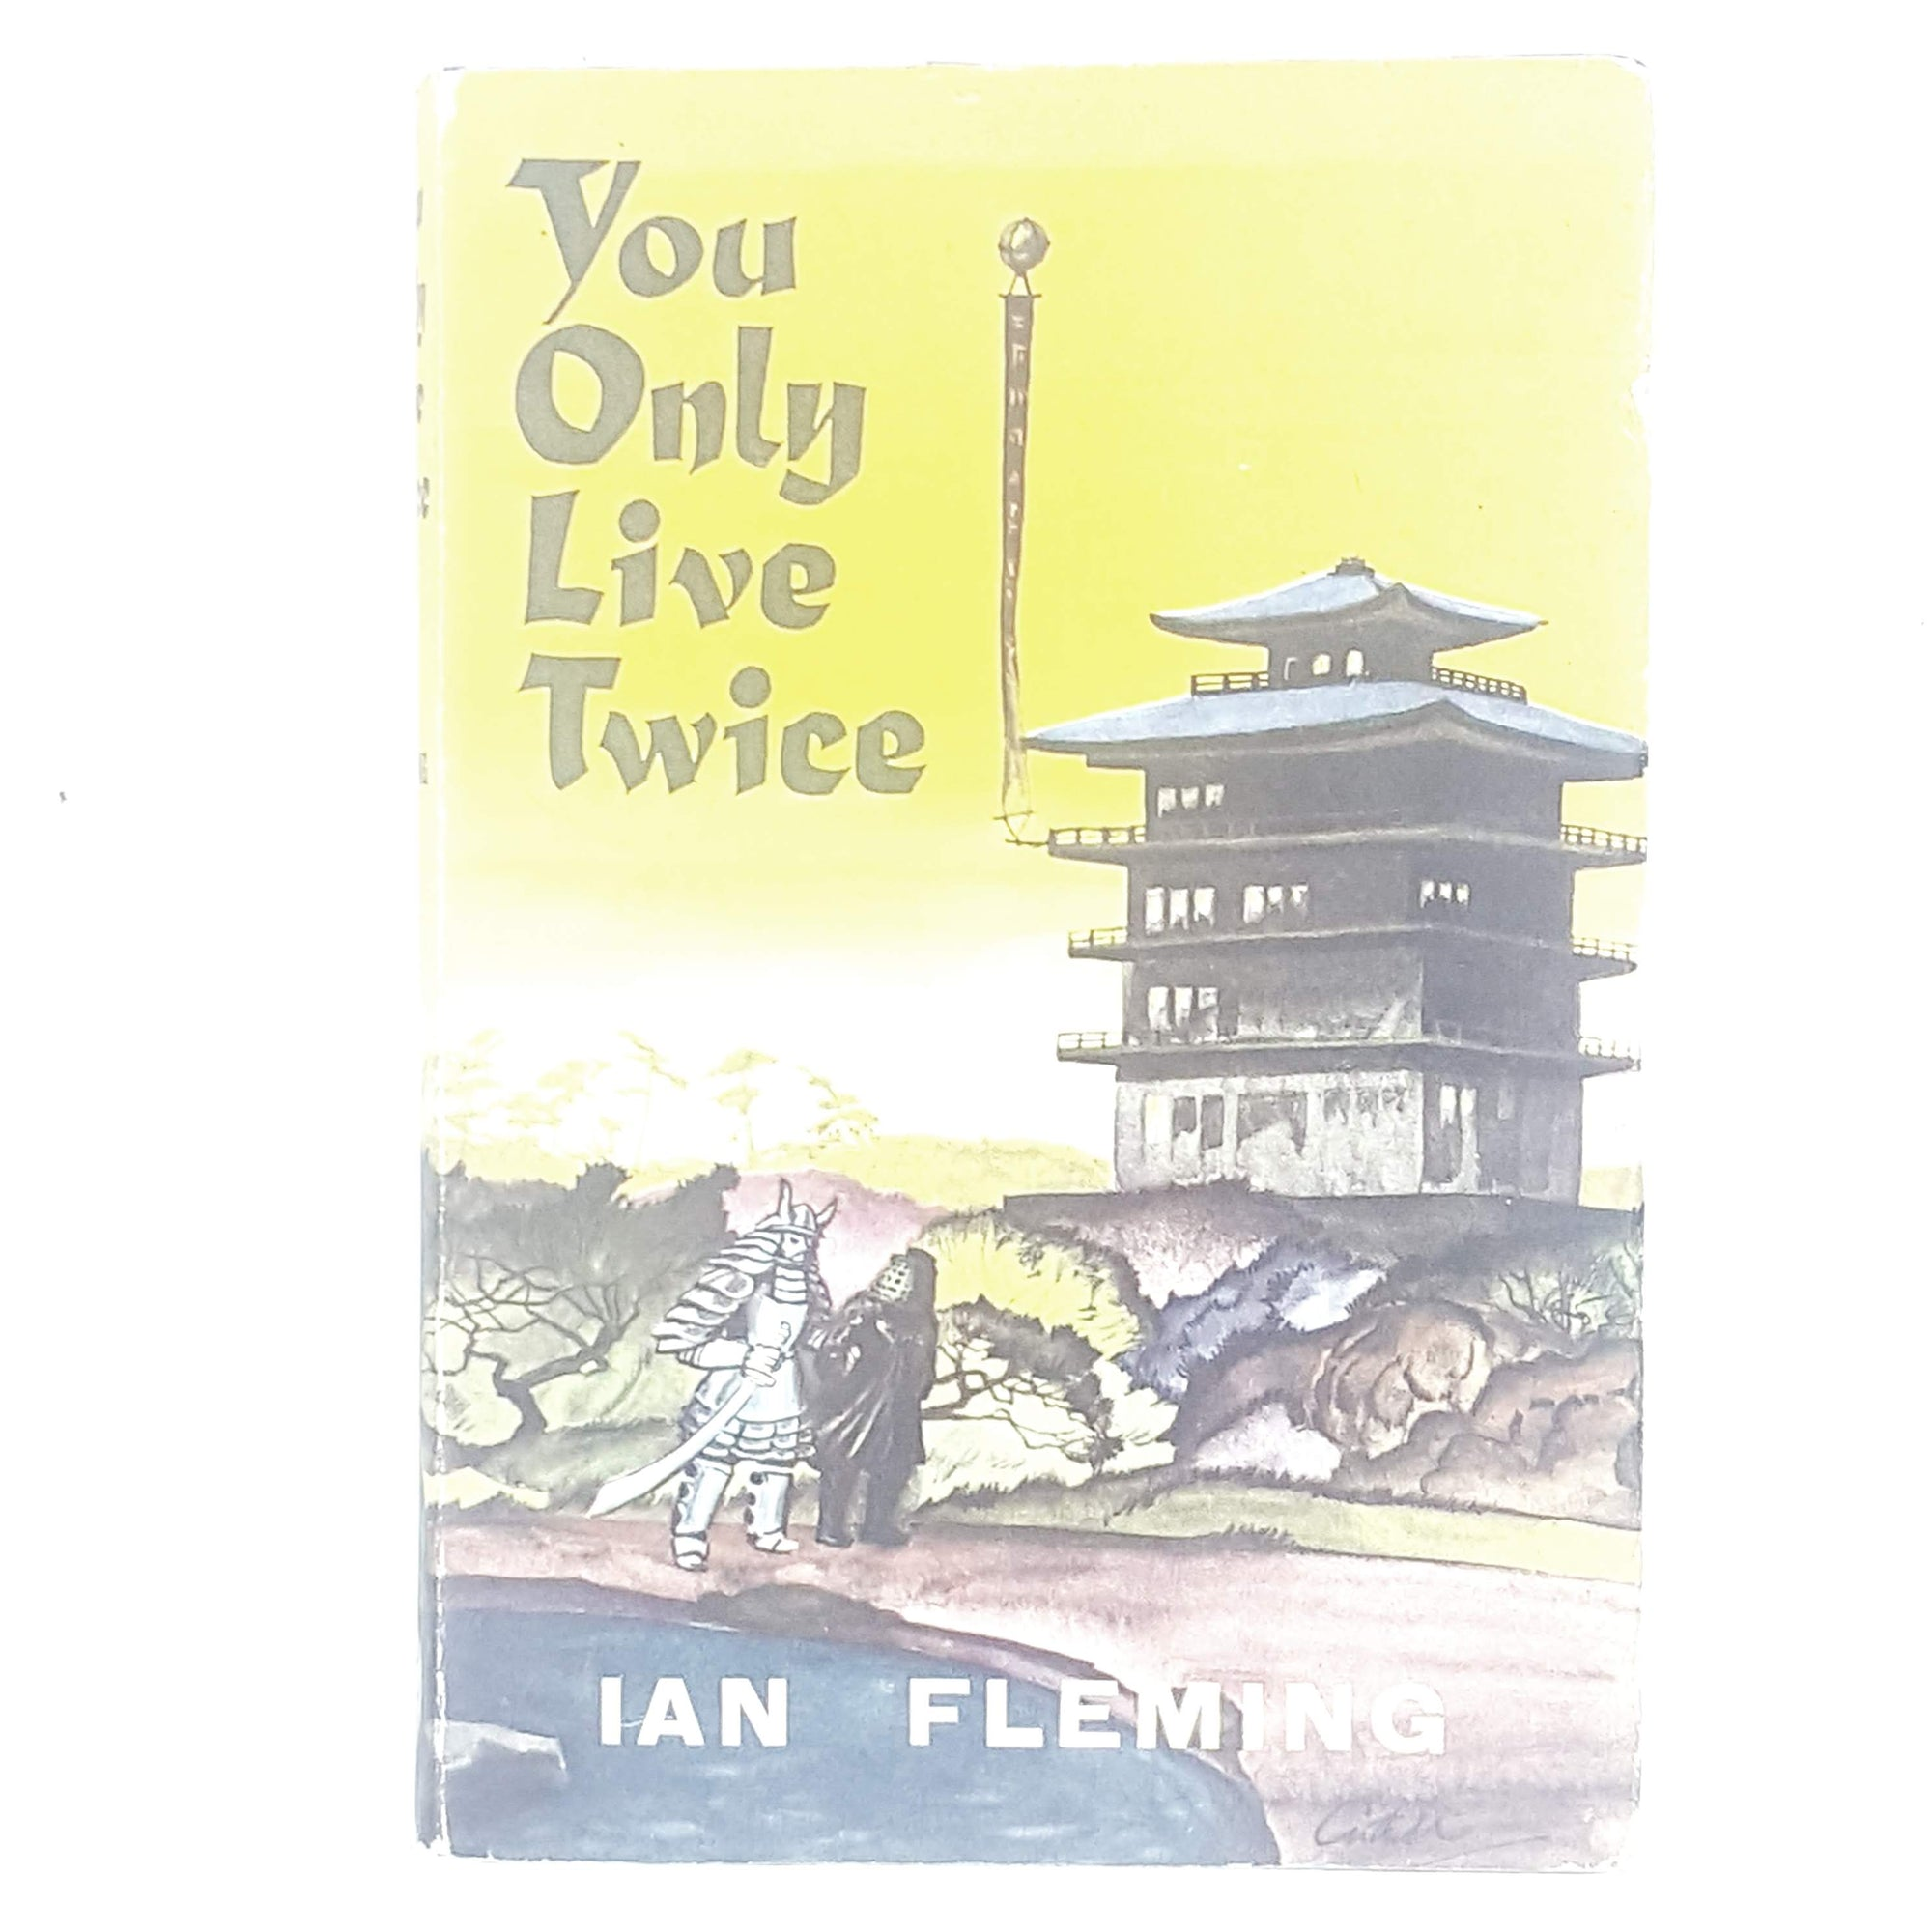 James Bond 007: You Only Live Twice by Ian Fleming - Book Club 1964